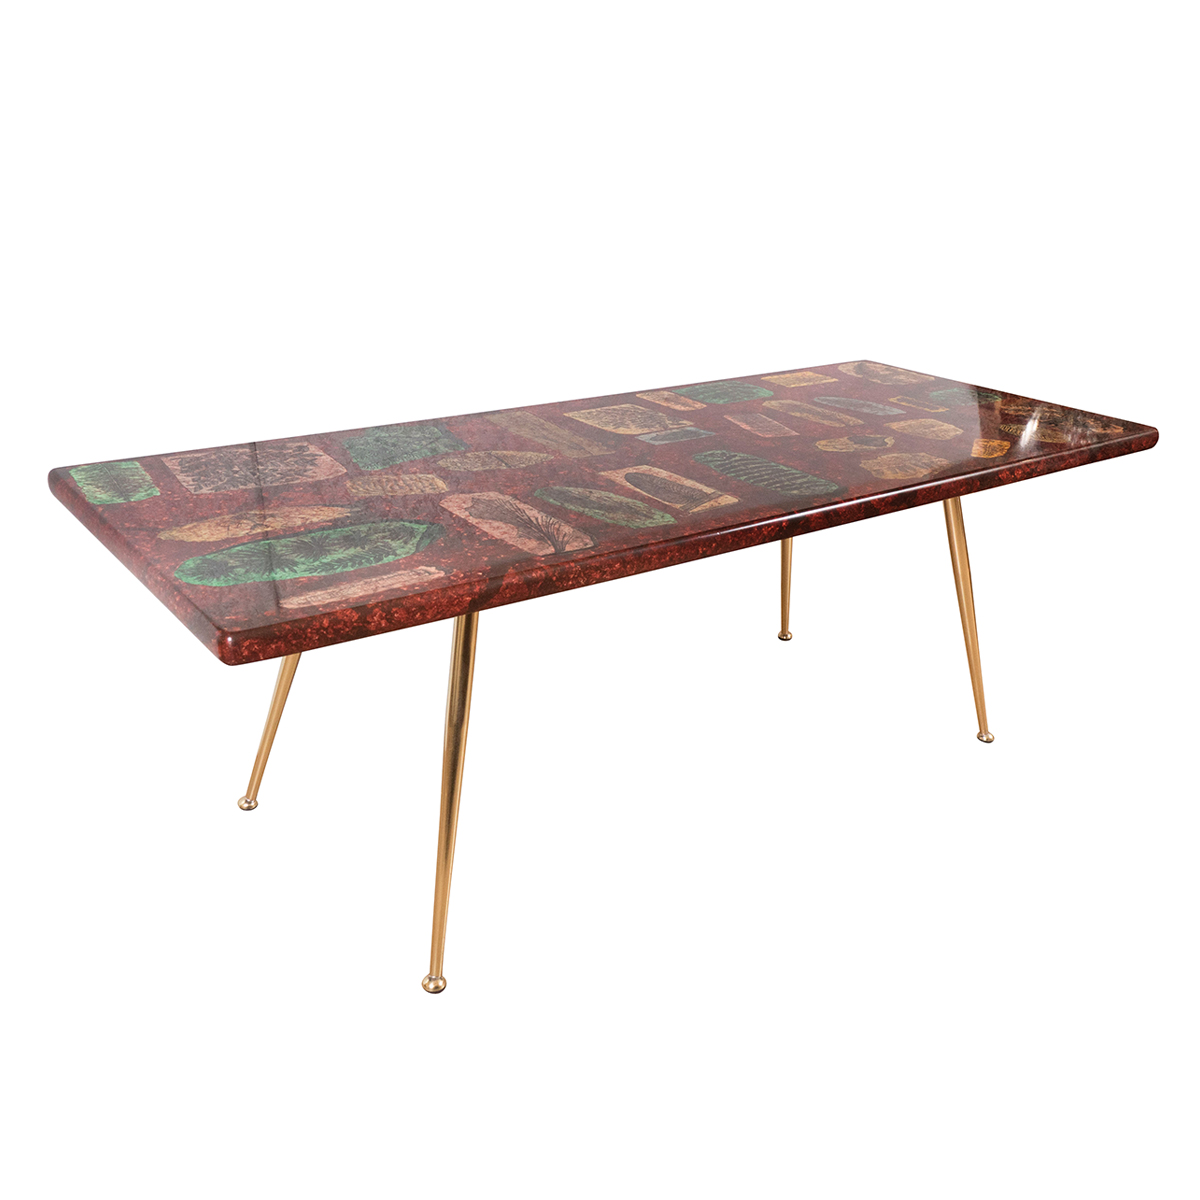 Brass Display Coffee Table: Rectangular Lacquered Wood And Brass Coffee Table